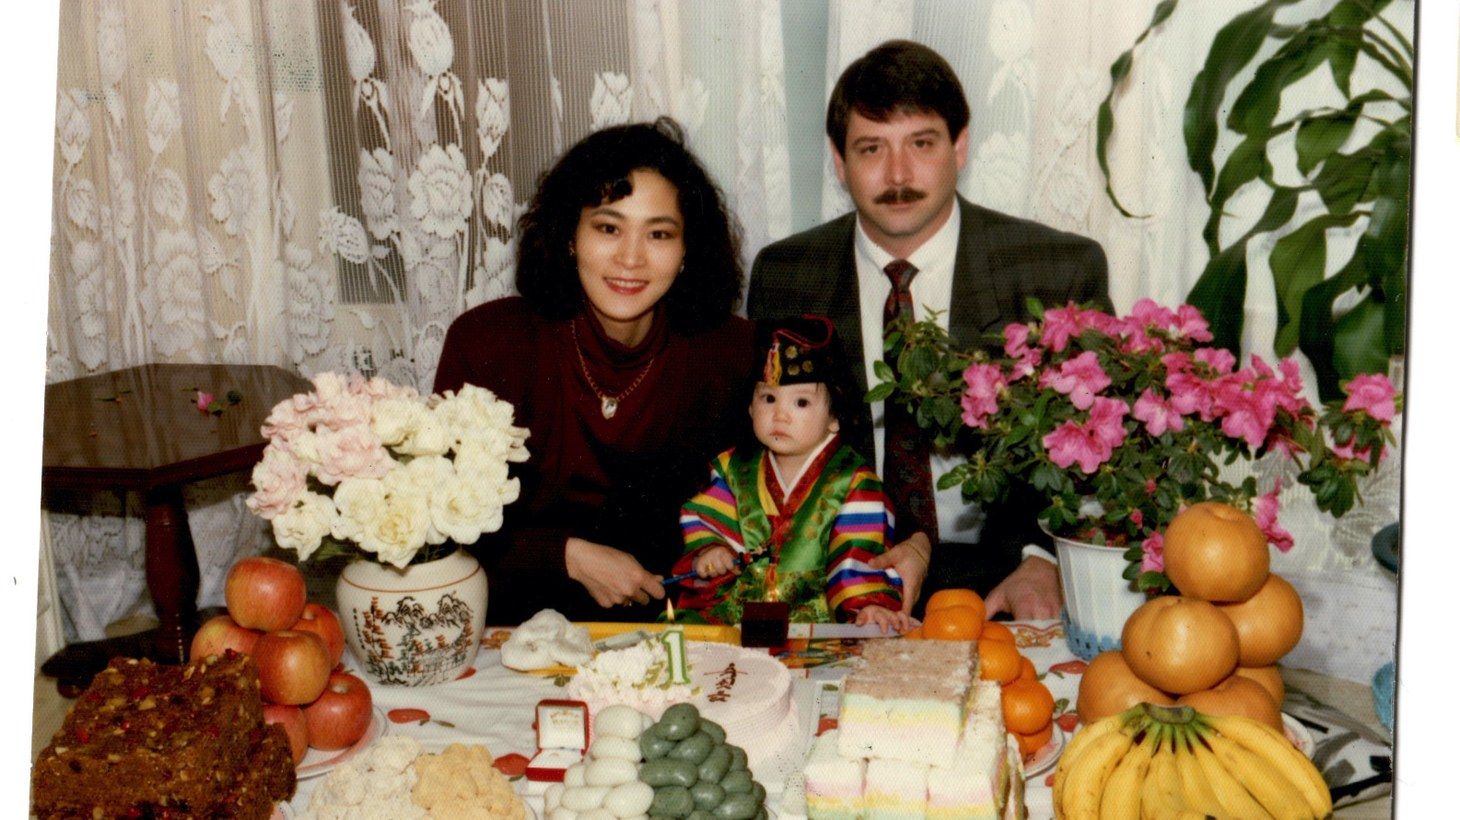 Growing up with her mother and father in Eugene, Oregon, Michelle Zauner took biannual trips to visit her mother's family in Seoul.